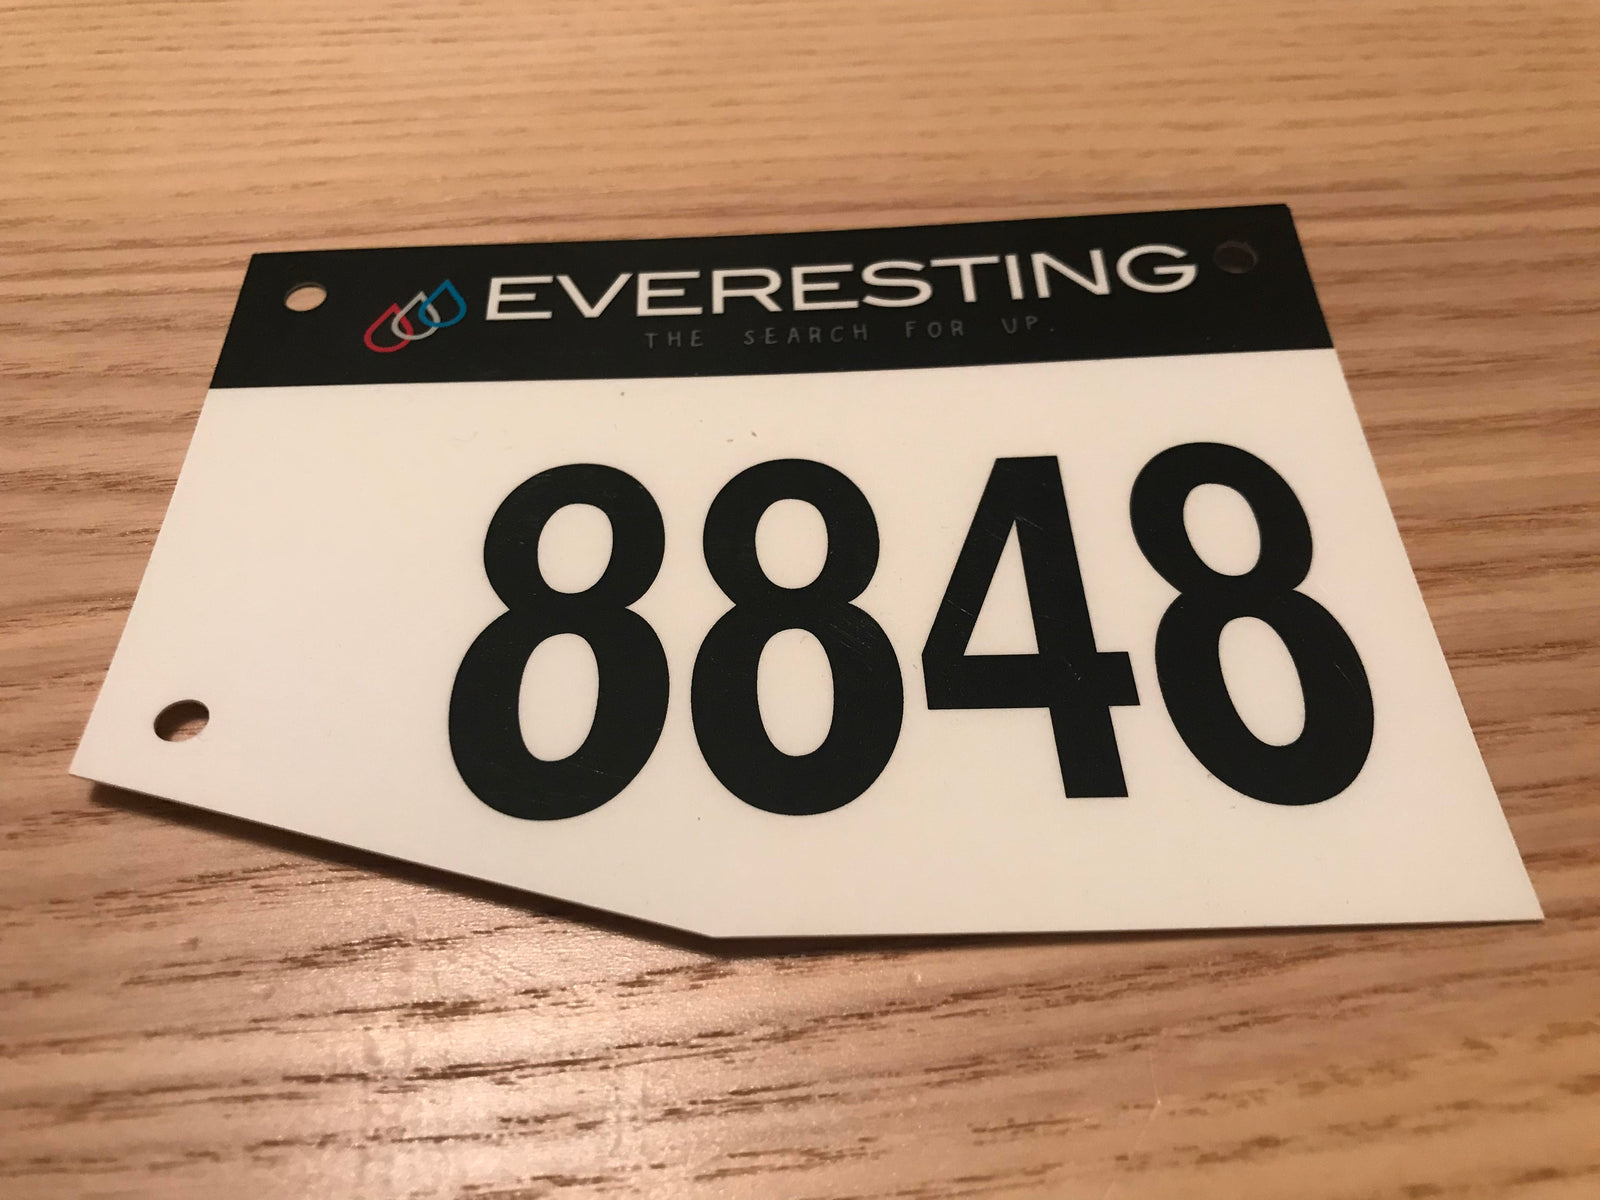 Everesting 'raceplate'